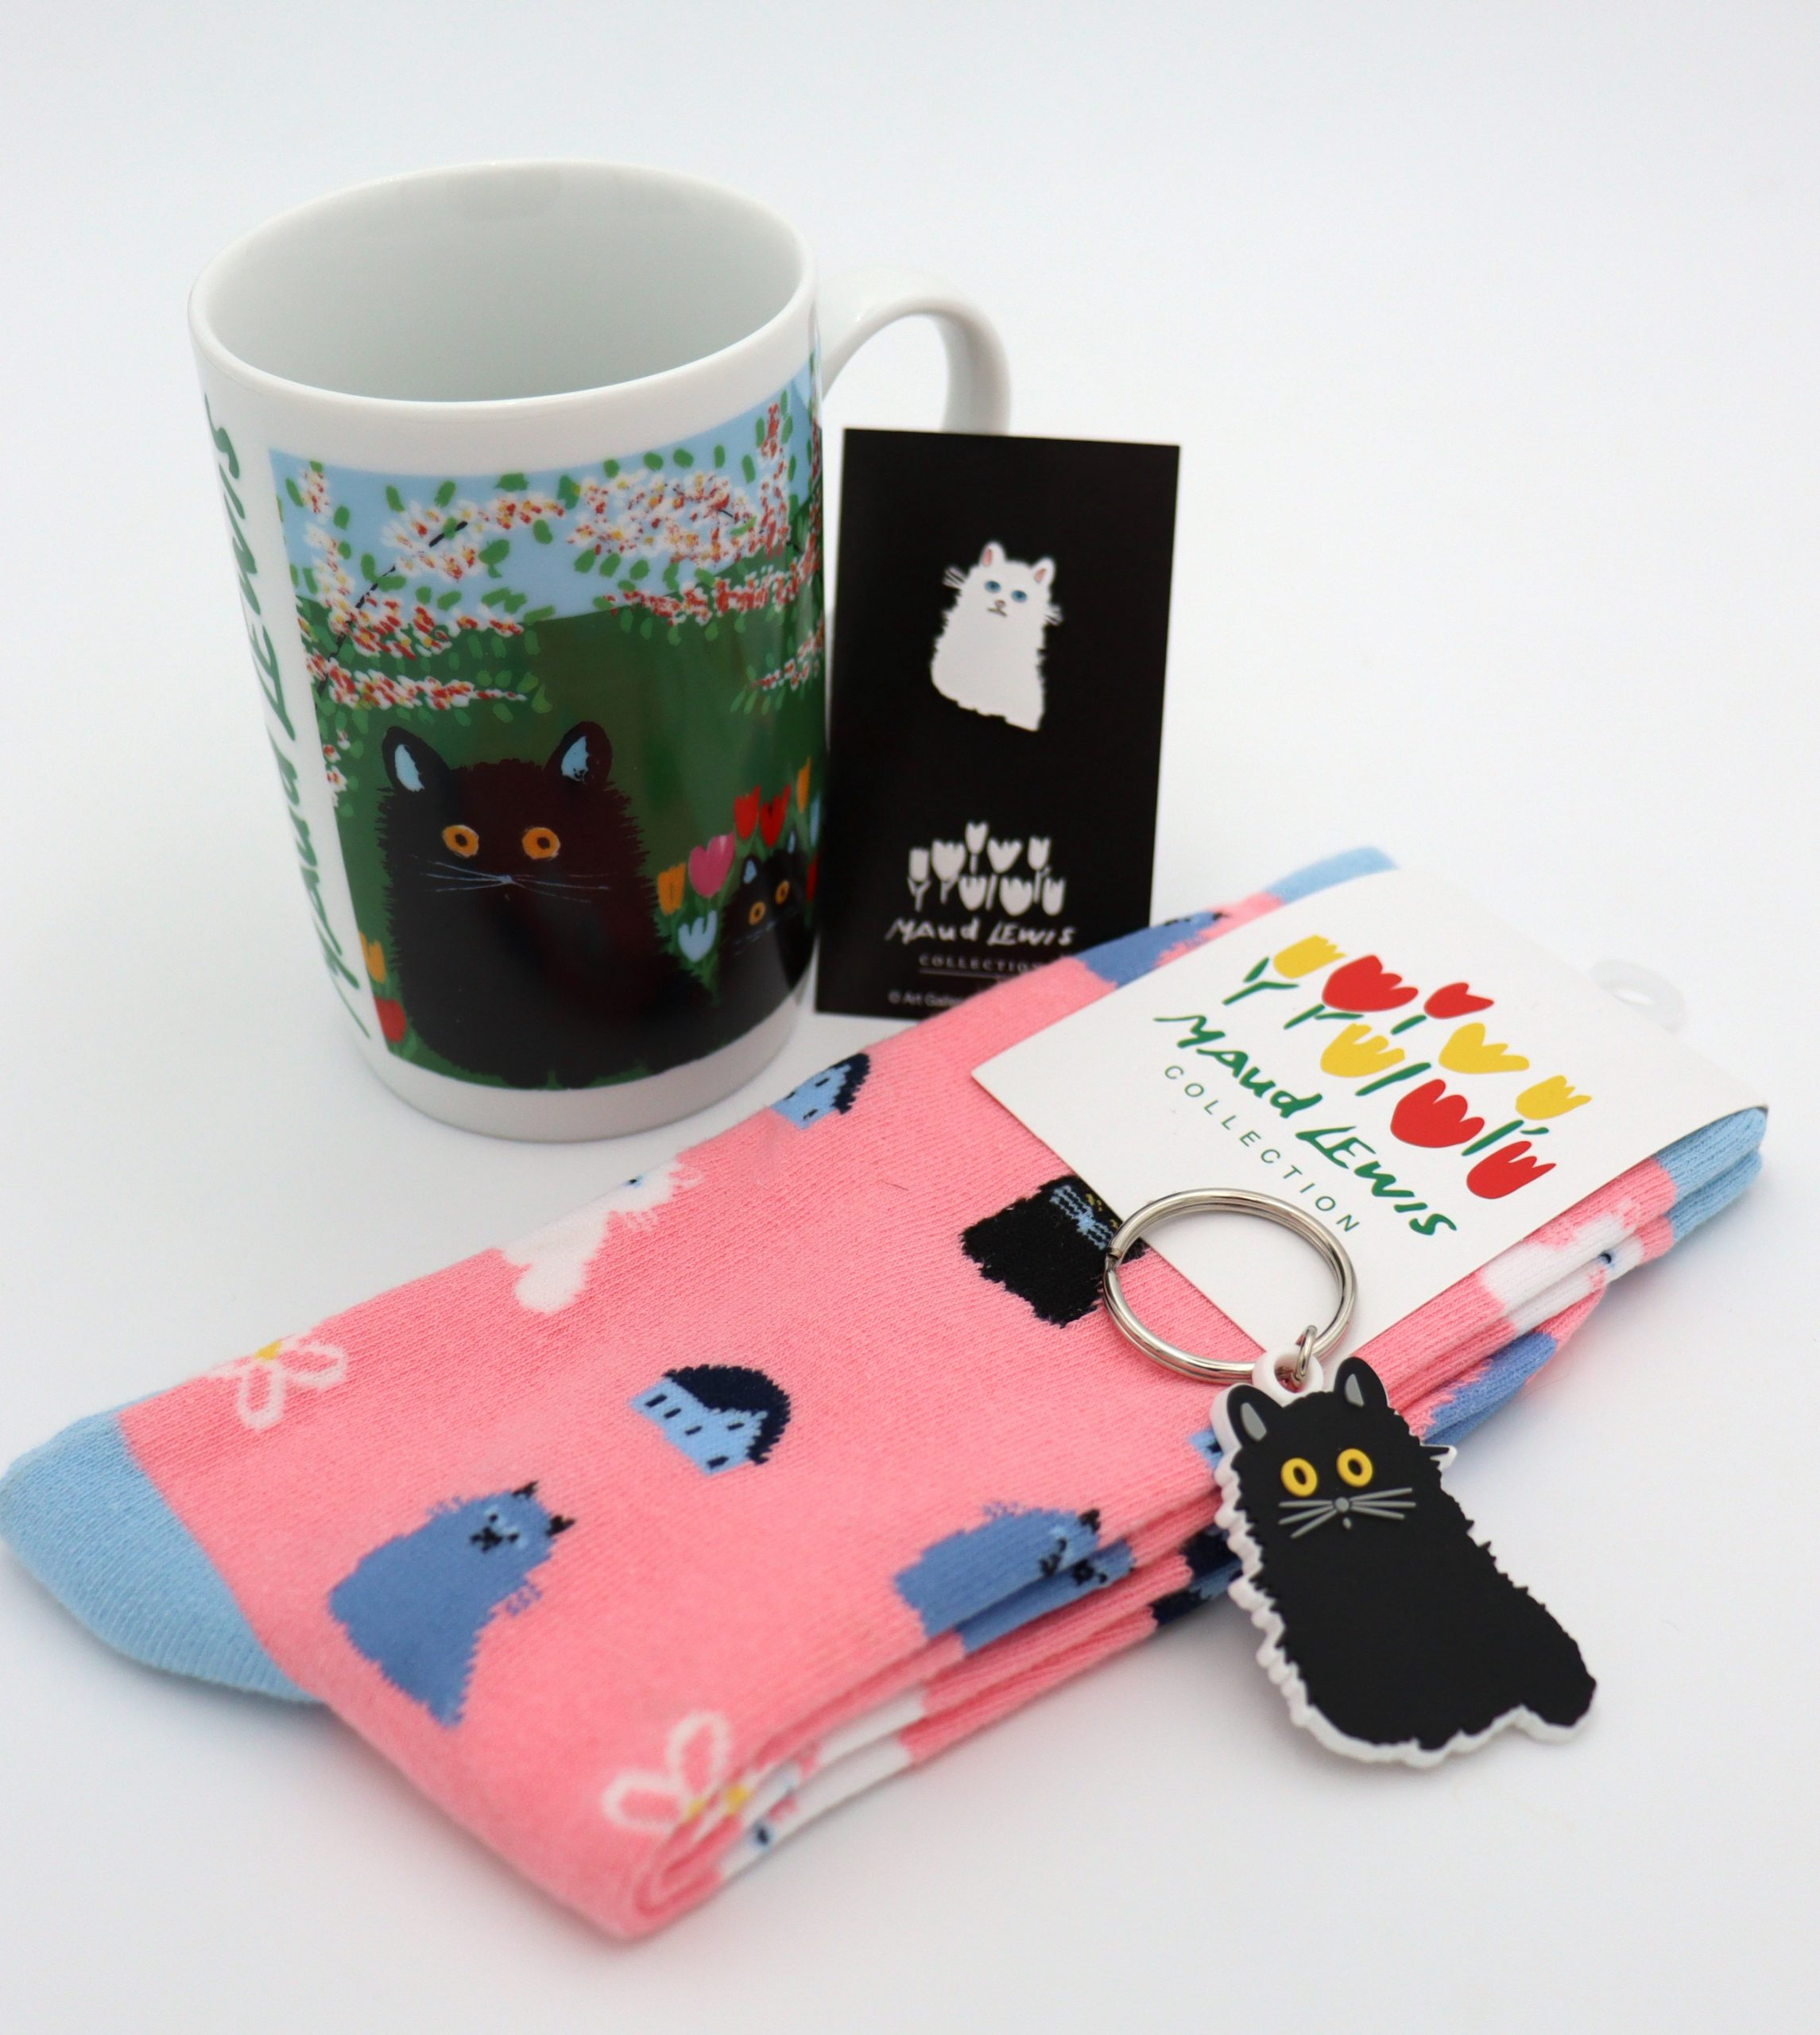 Photograph of Maud Lewis merchandise that features cats including: a mug, a white cat enamel pin, pink sucks with blue and white cats, and a black cat keychain.